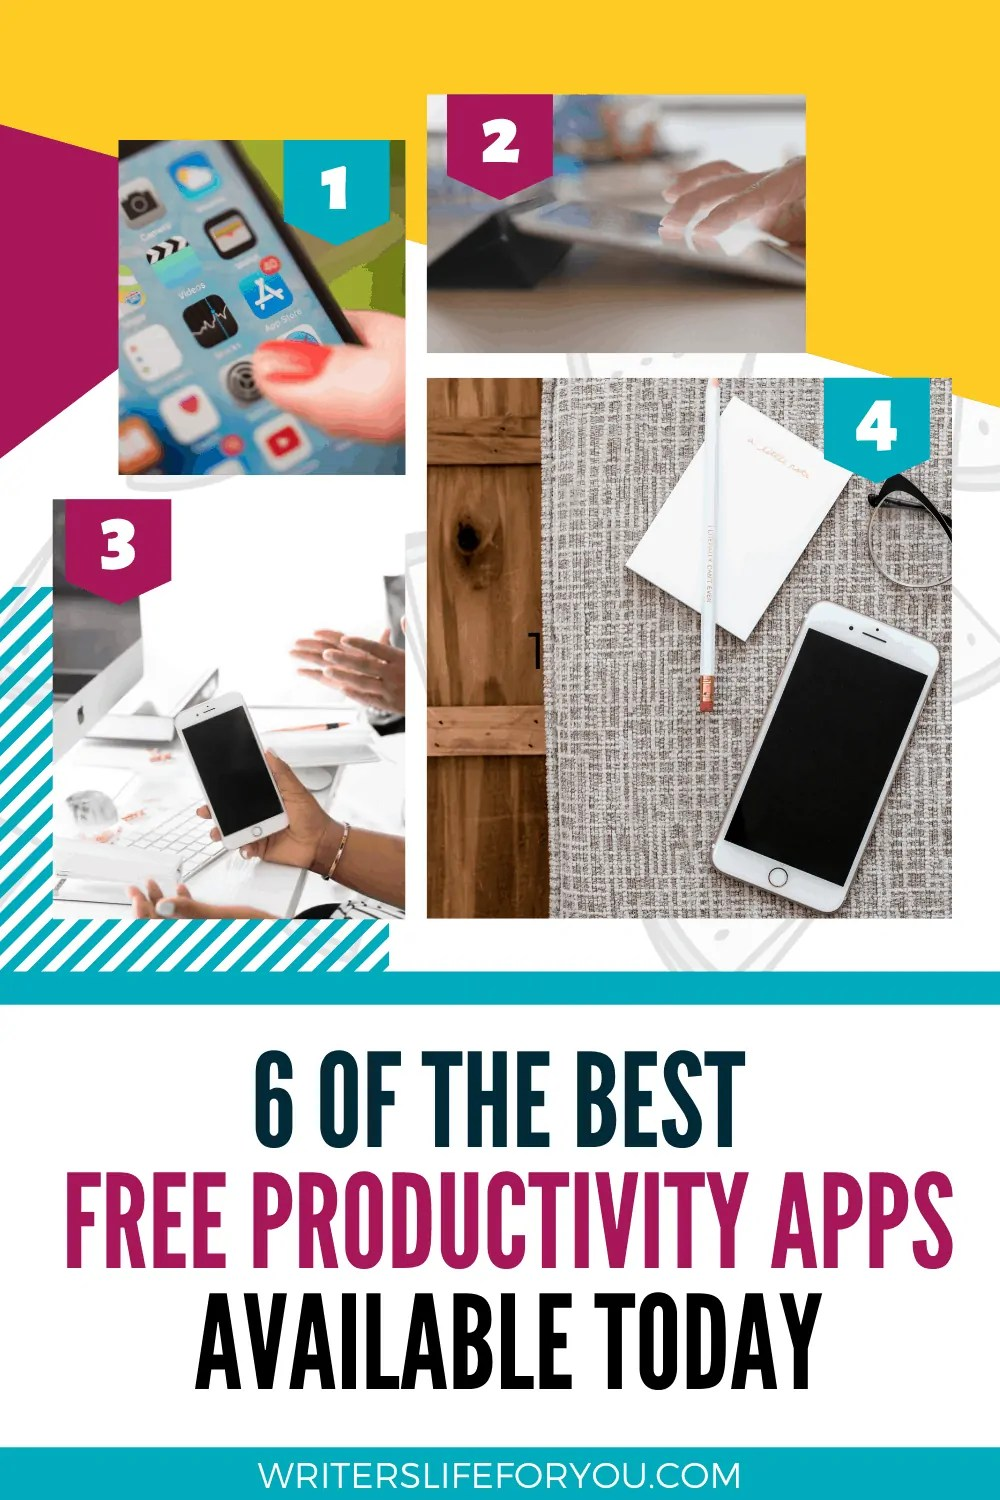 7 of the Best Free Productivity Apps Available Today